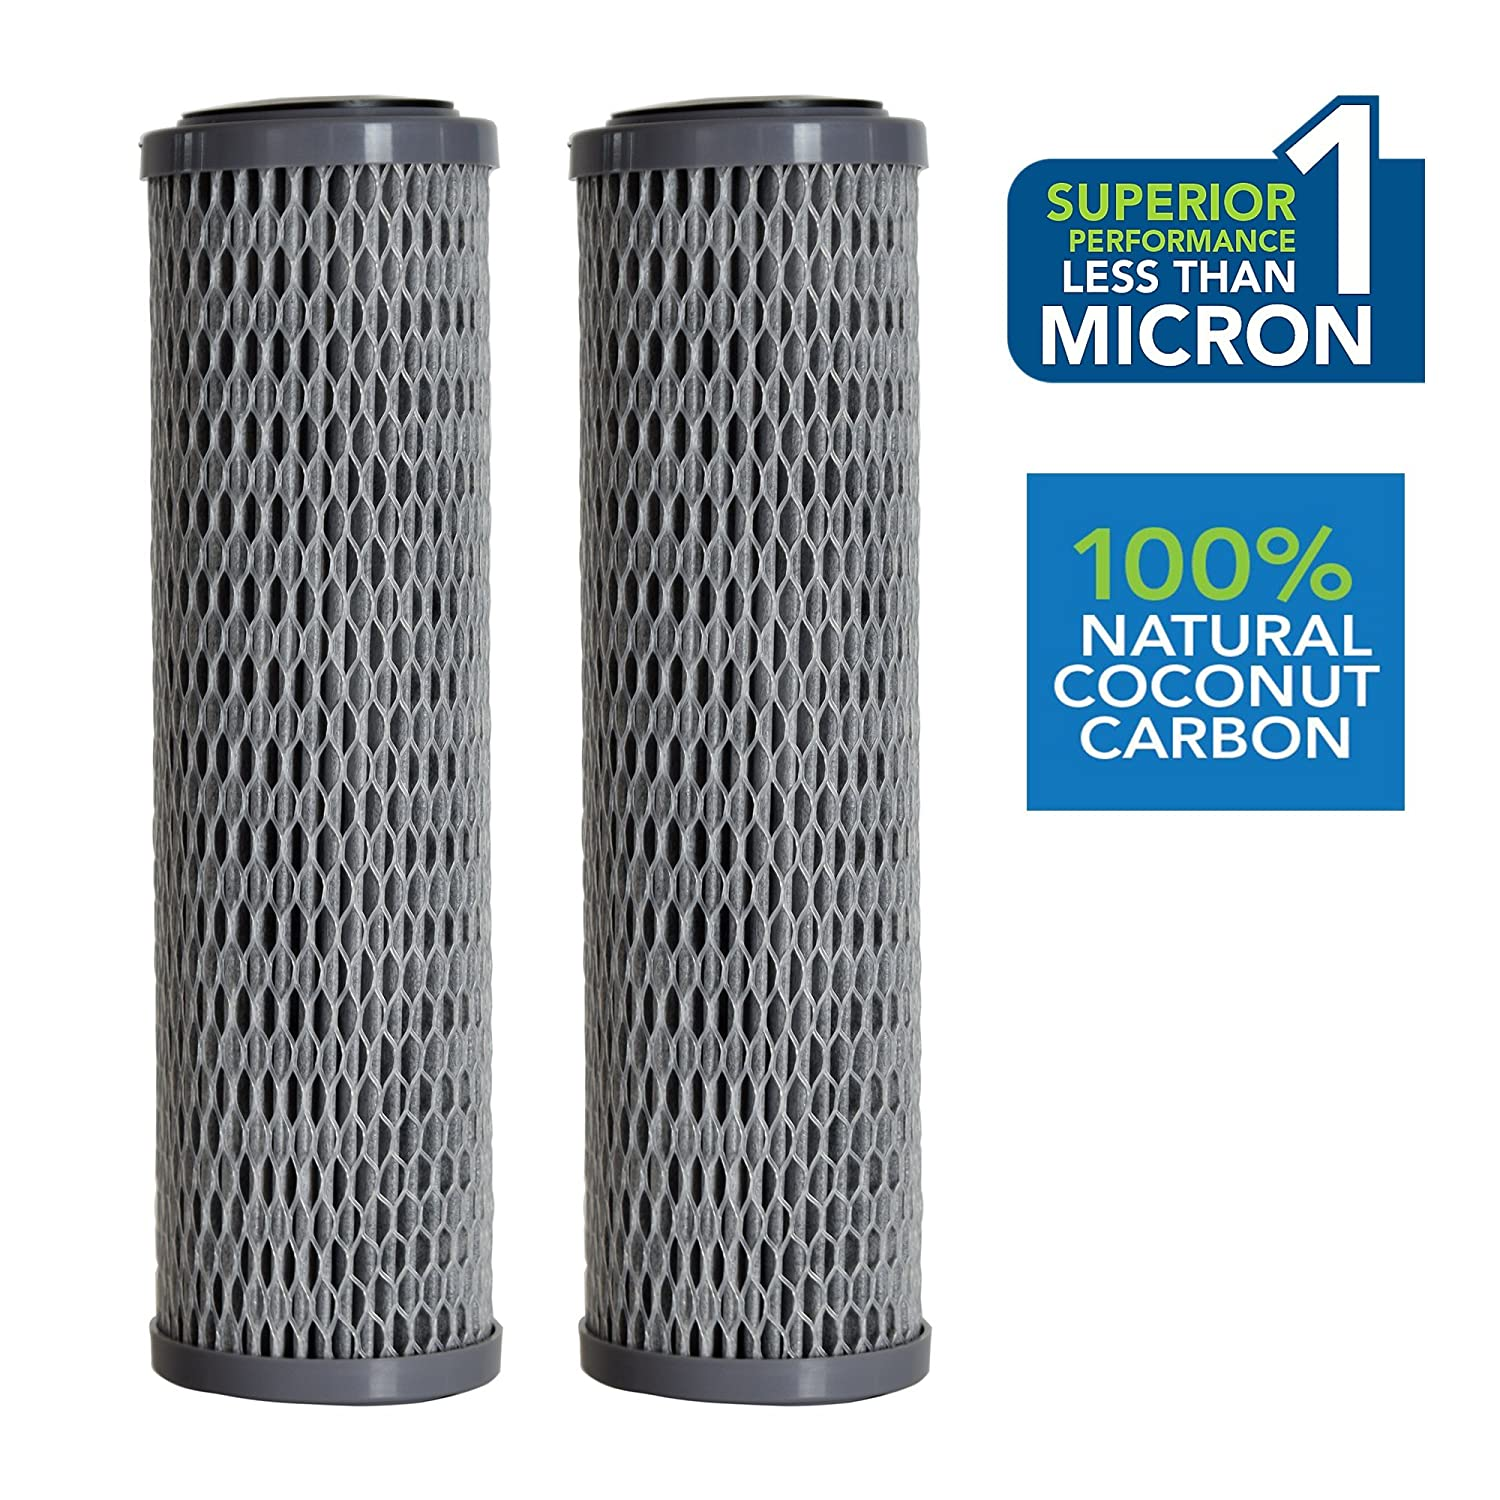 Clear2o CUF1252 Universal Advanced Premium Carbon Filter Standard Capacity Whole House & RV Water Filter, 2 Filters Included, Gray (Pack of 2)